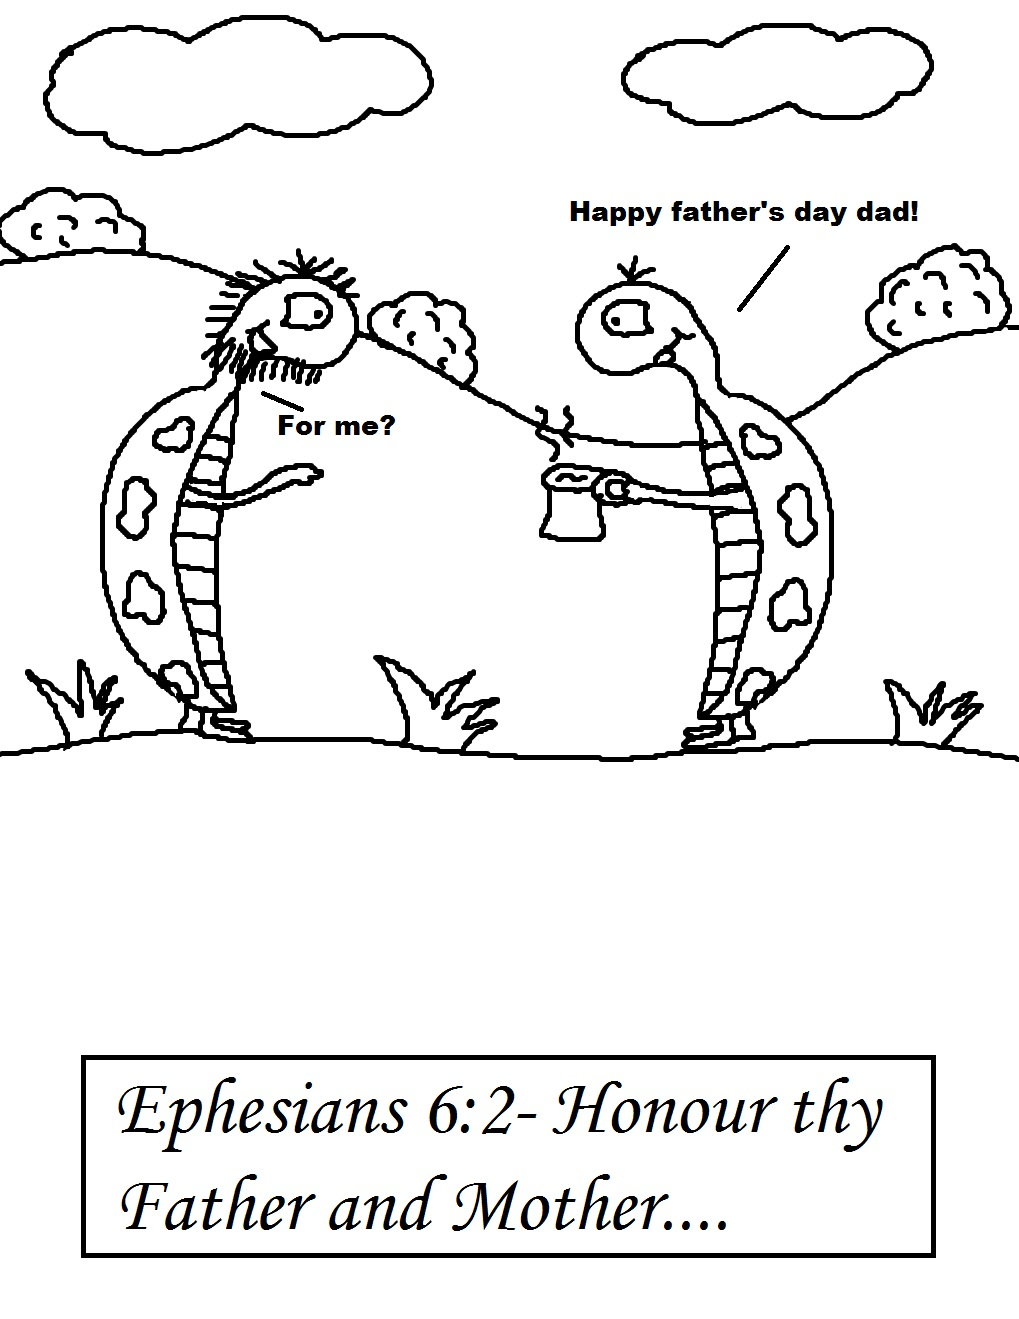 Fathers Day Coloring Pages For Church | Coloring Pages